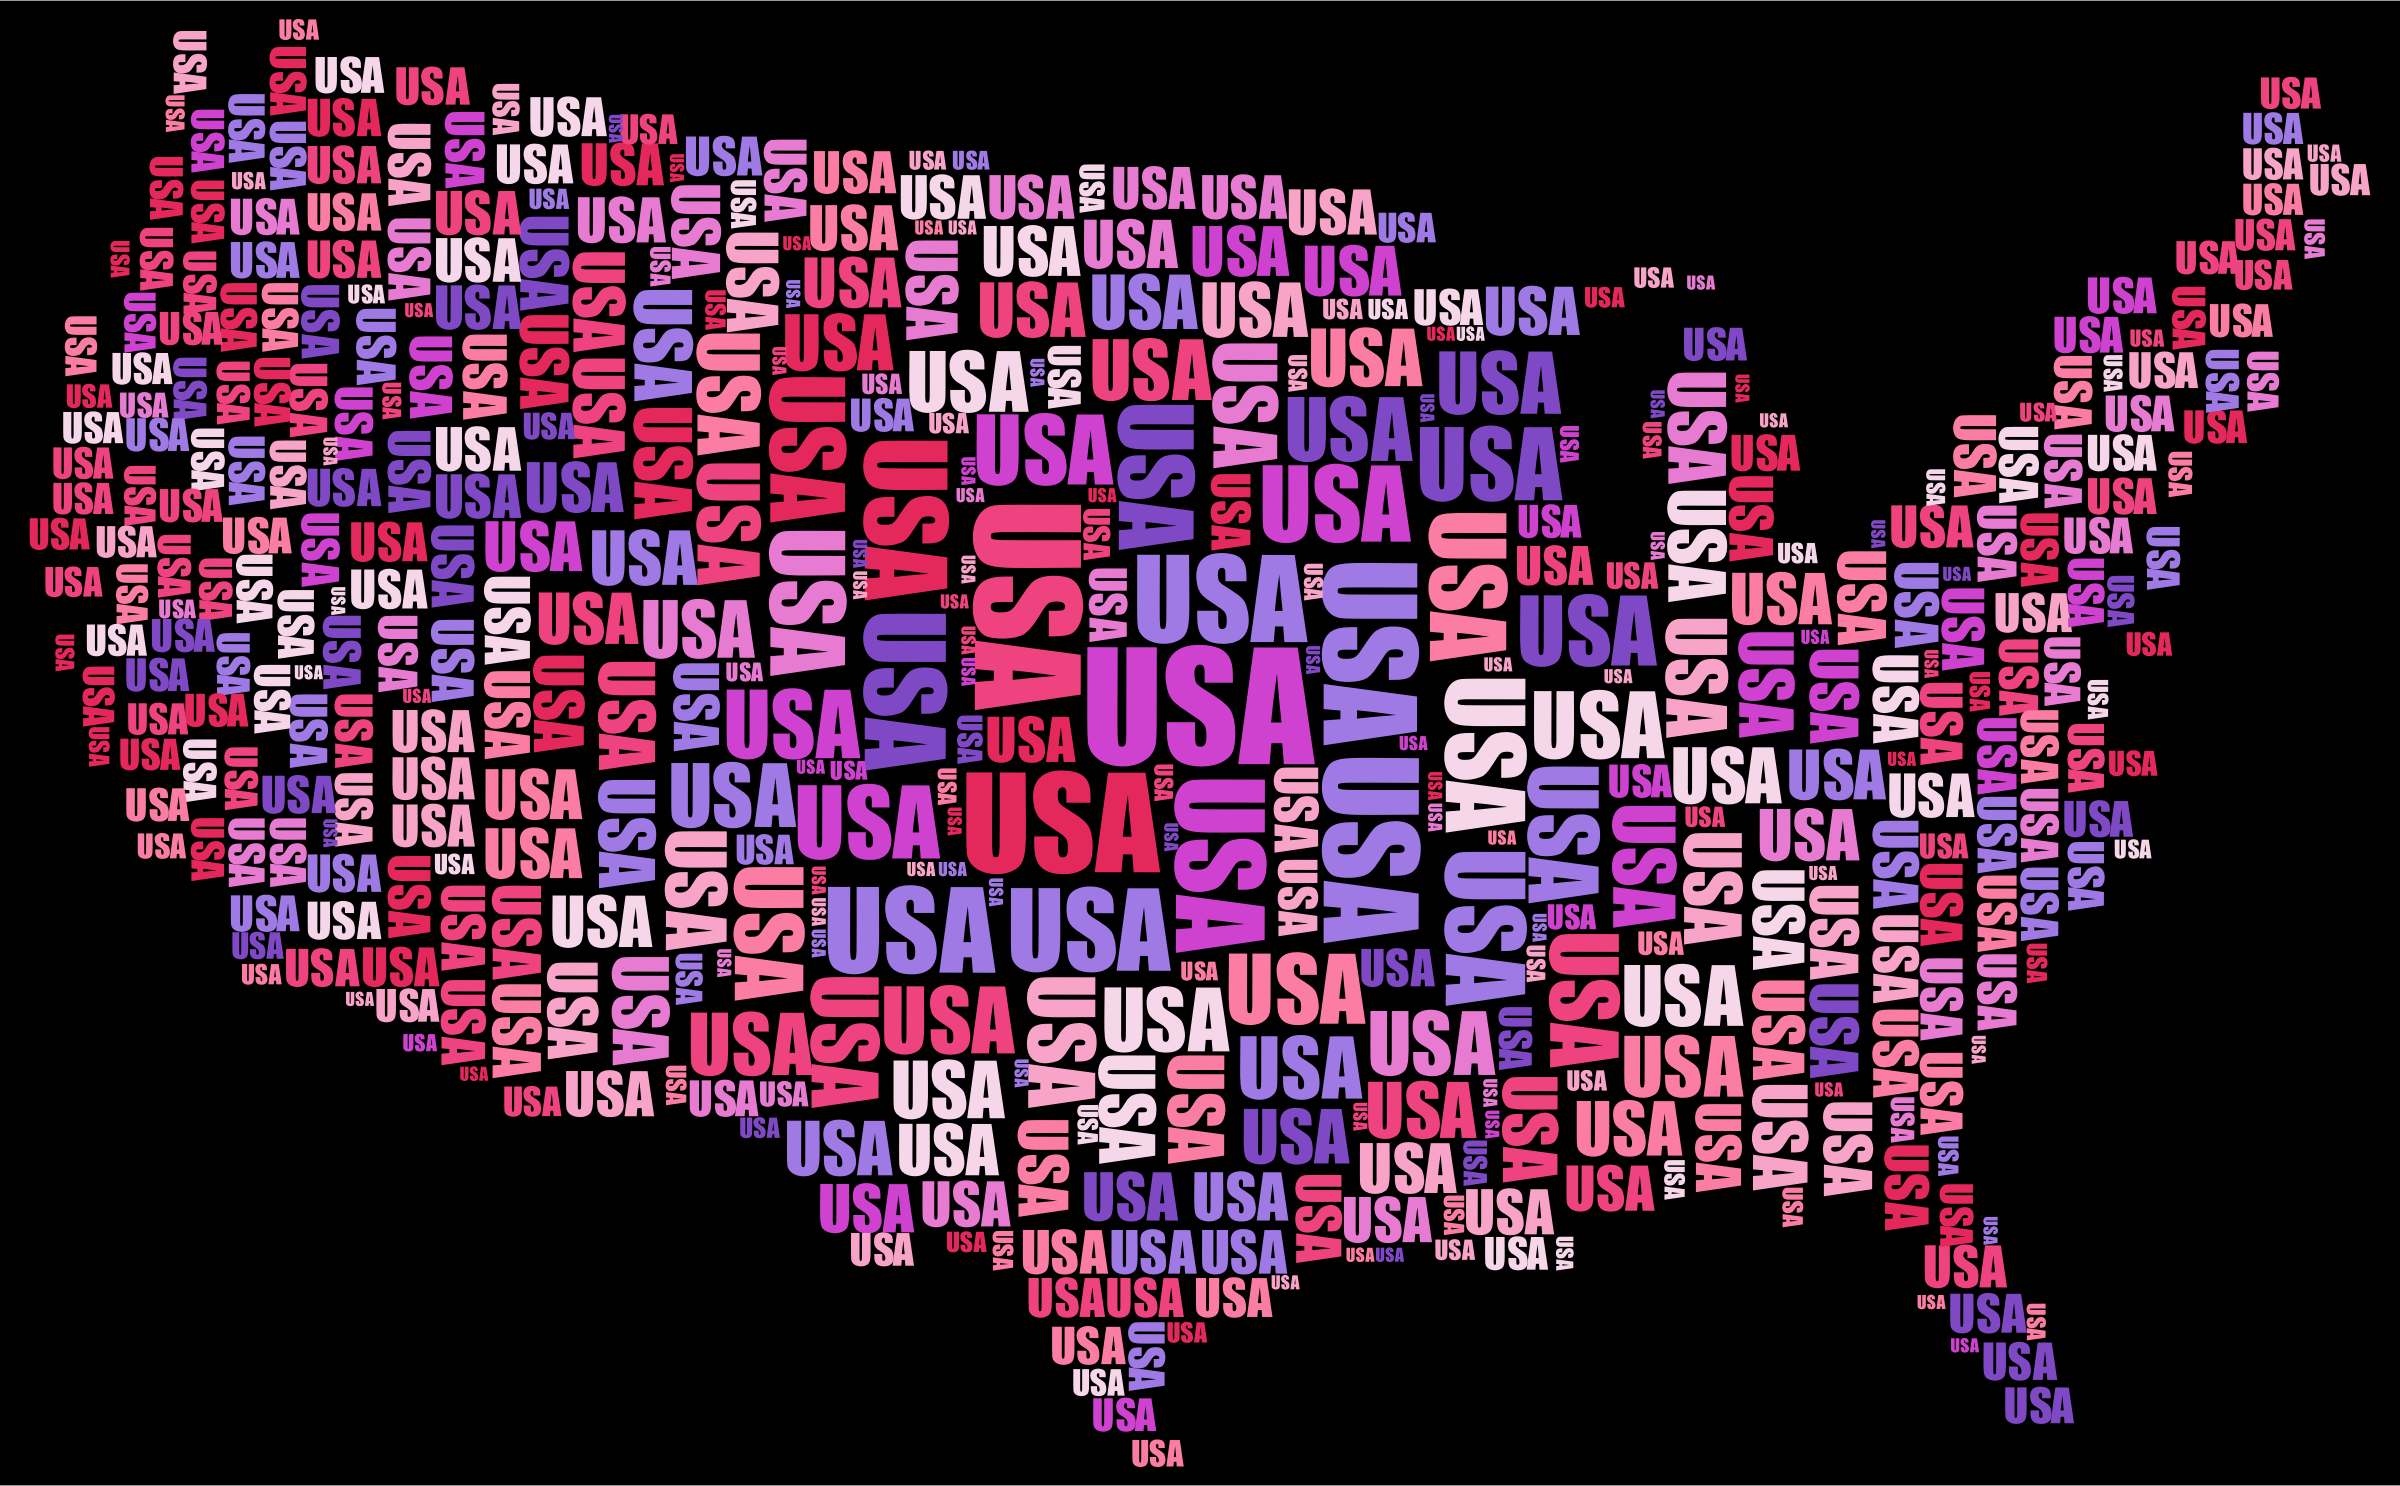 USA Word Cloud by GDJ